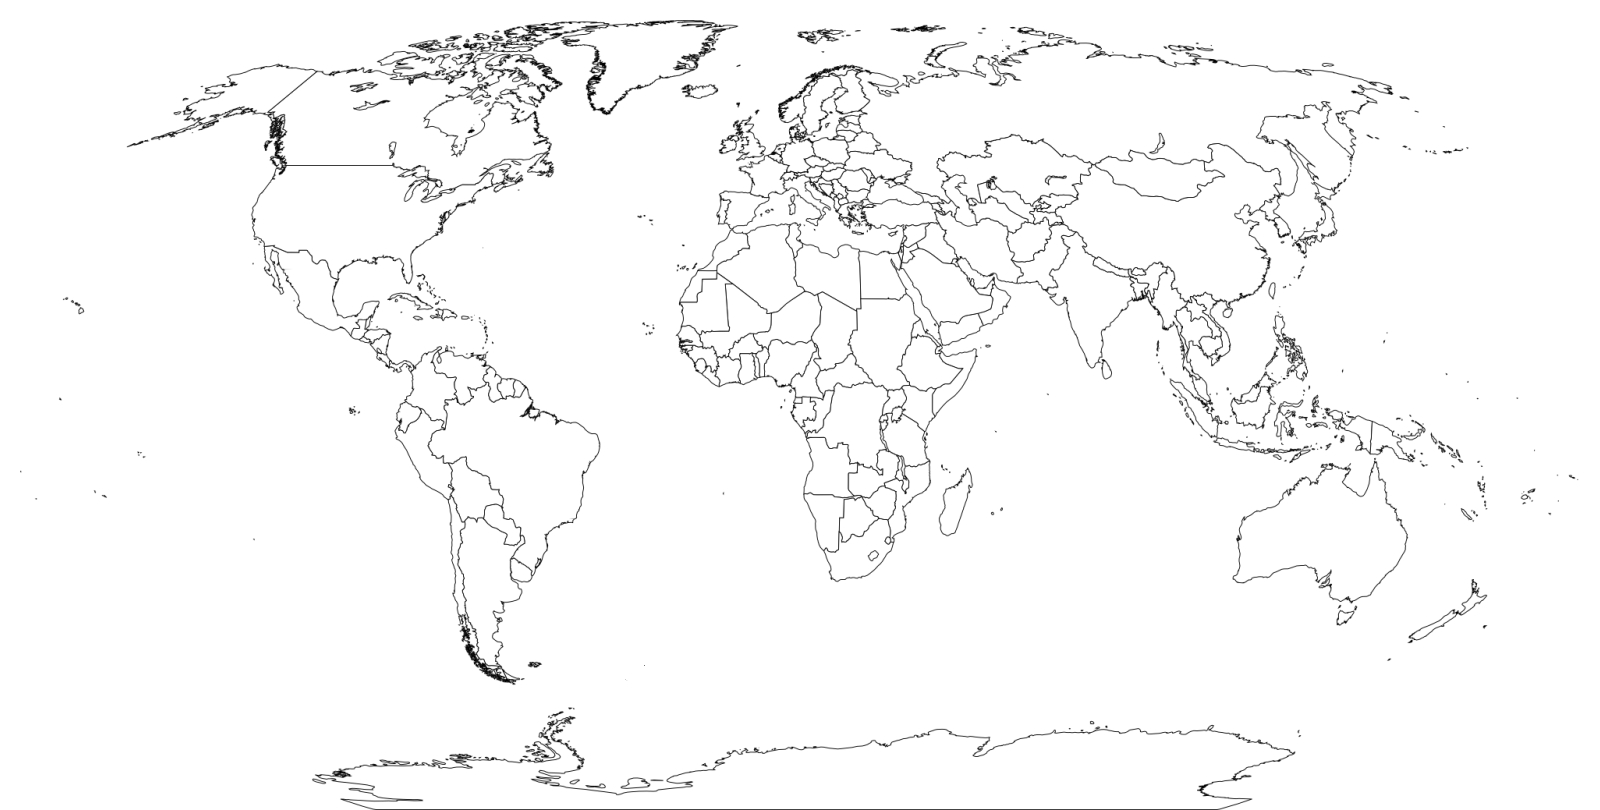 Printable World Maps - World Maps - Map Pictures - Free Printable Blank World Map Download